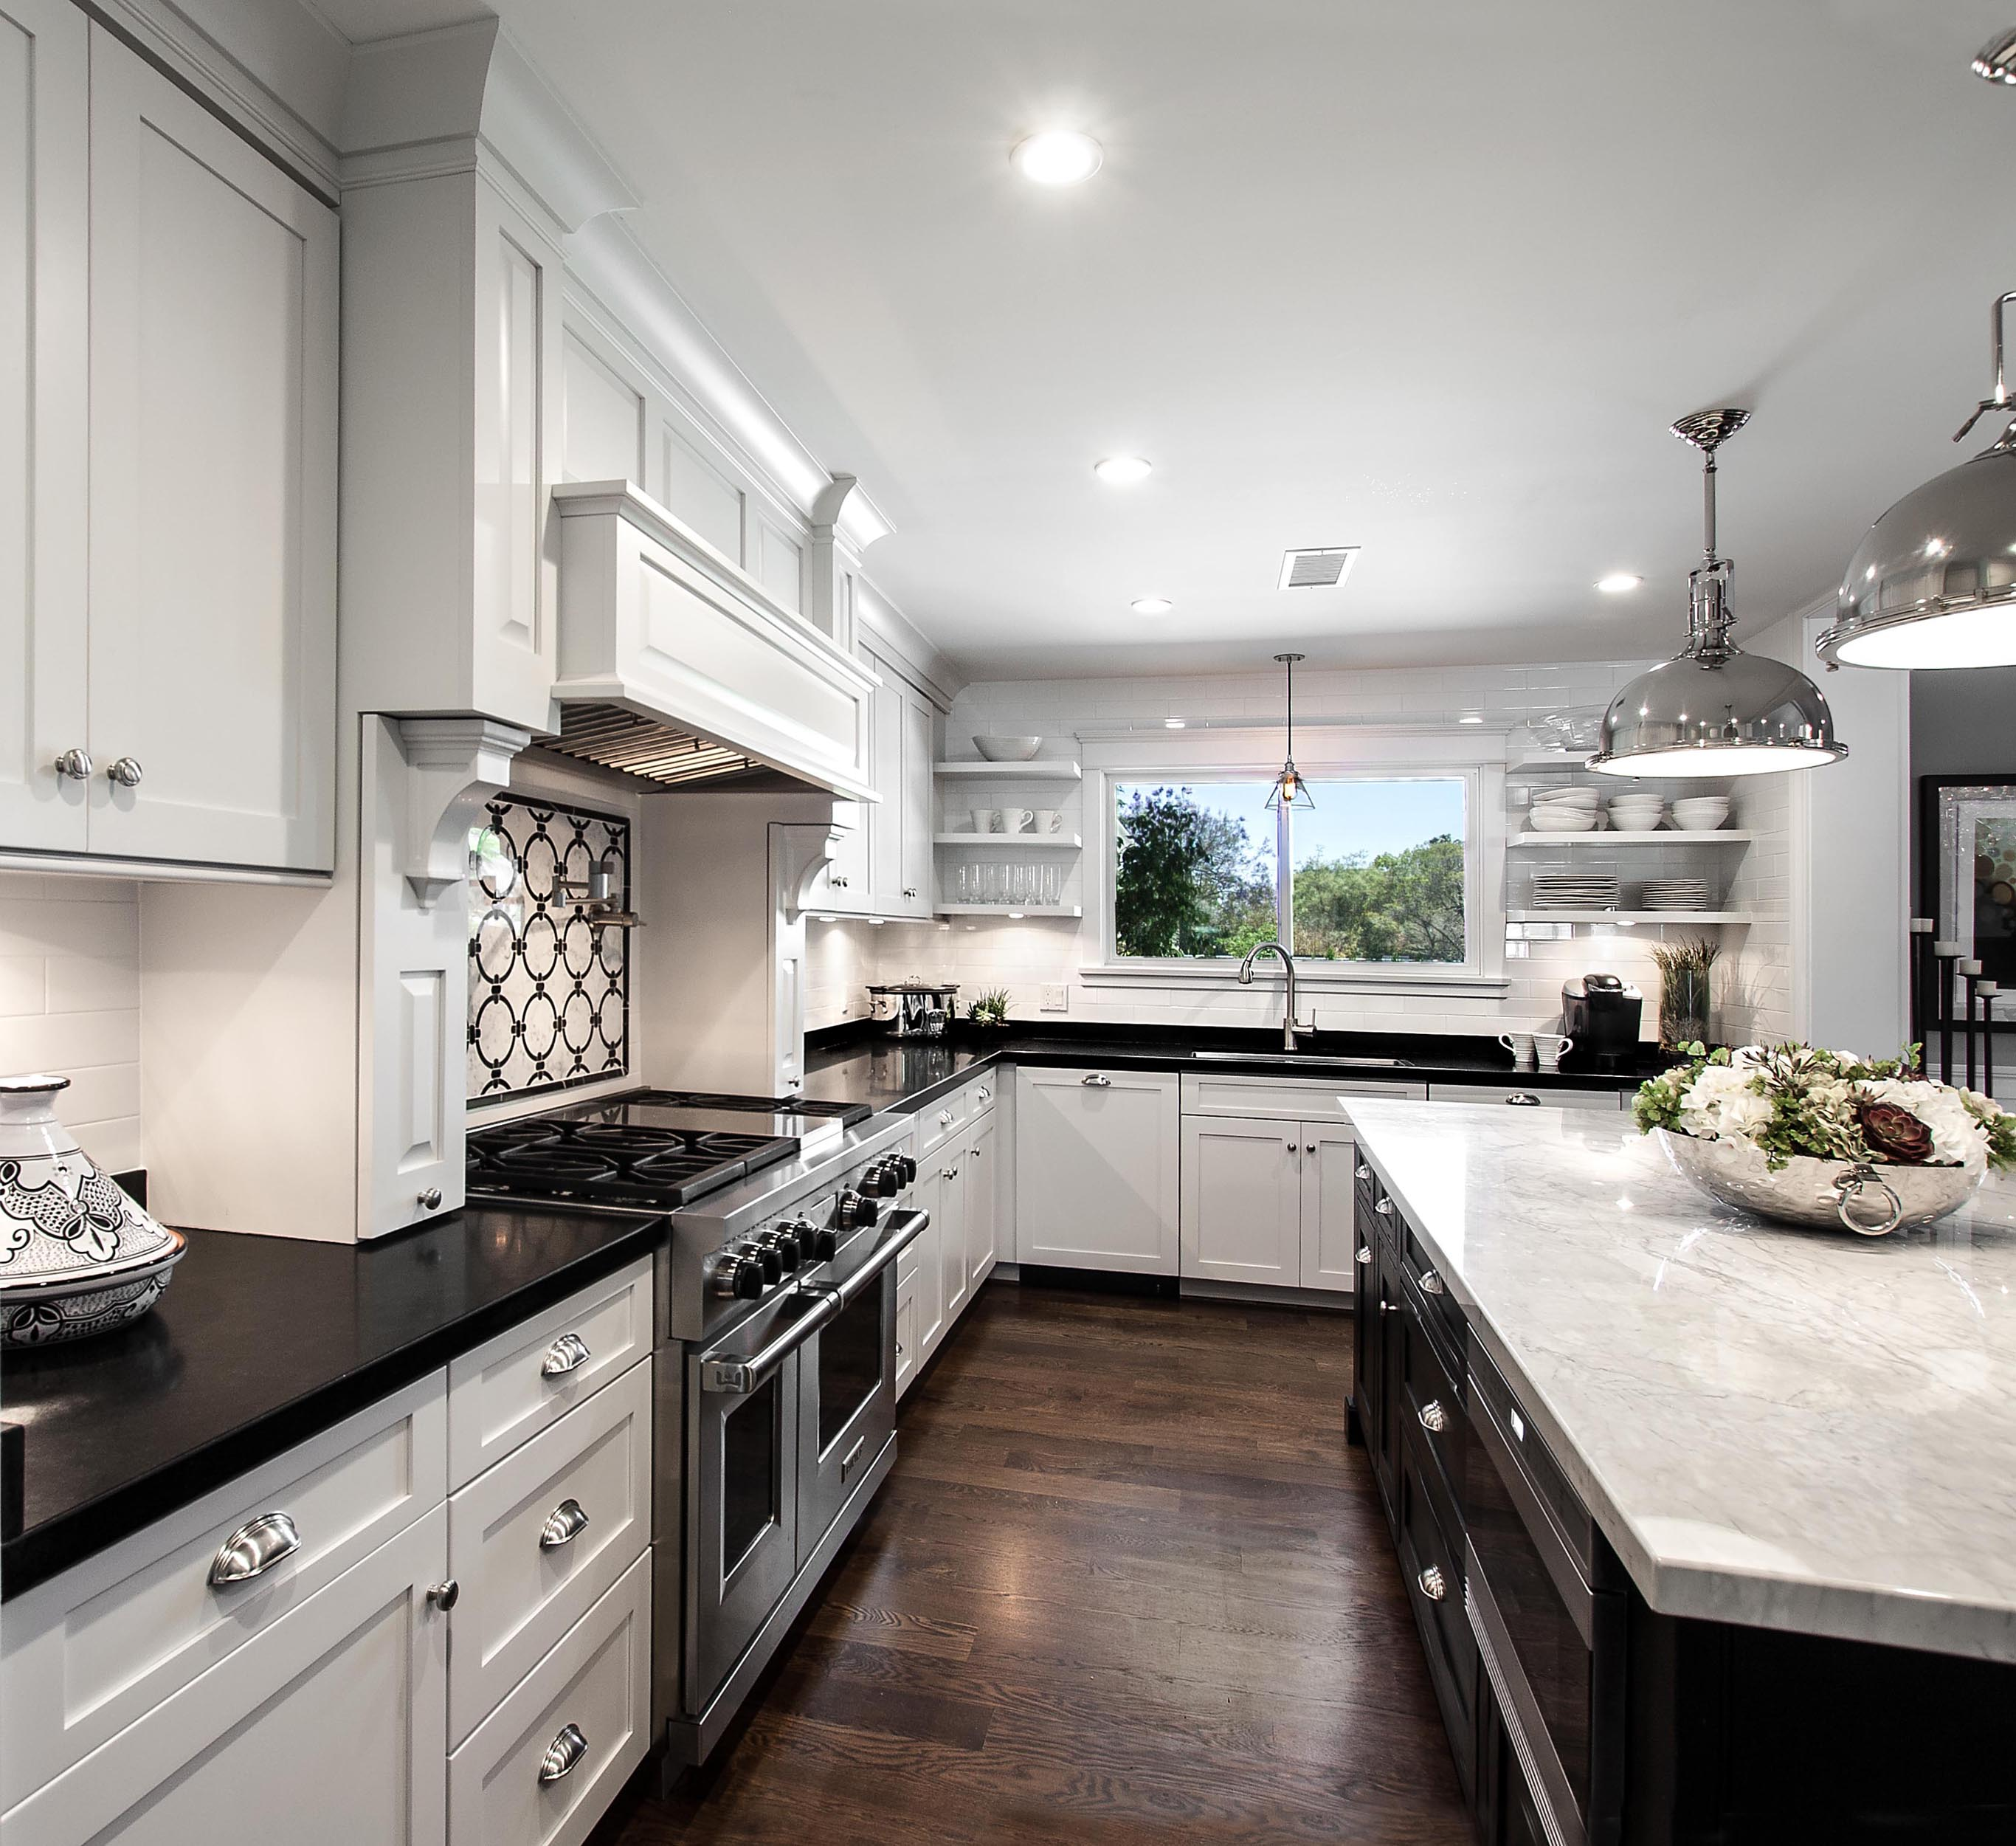 White Kitchen Cabinetry with Black Countertops